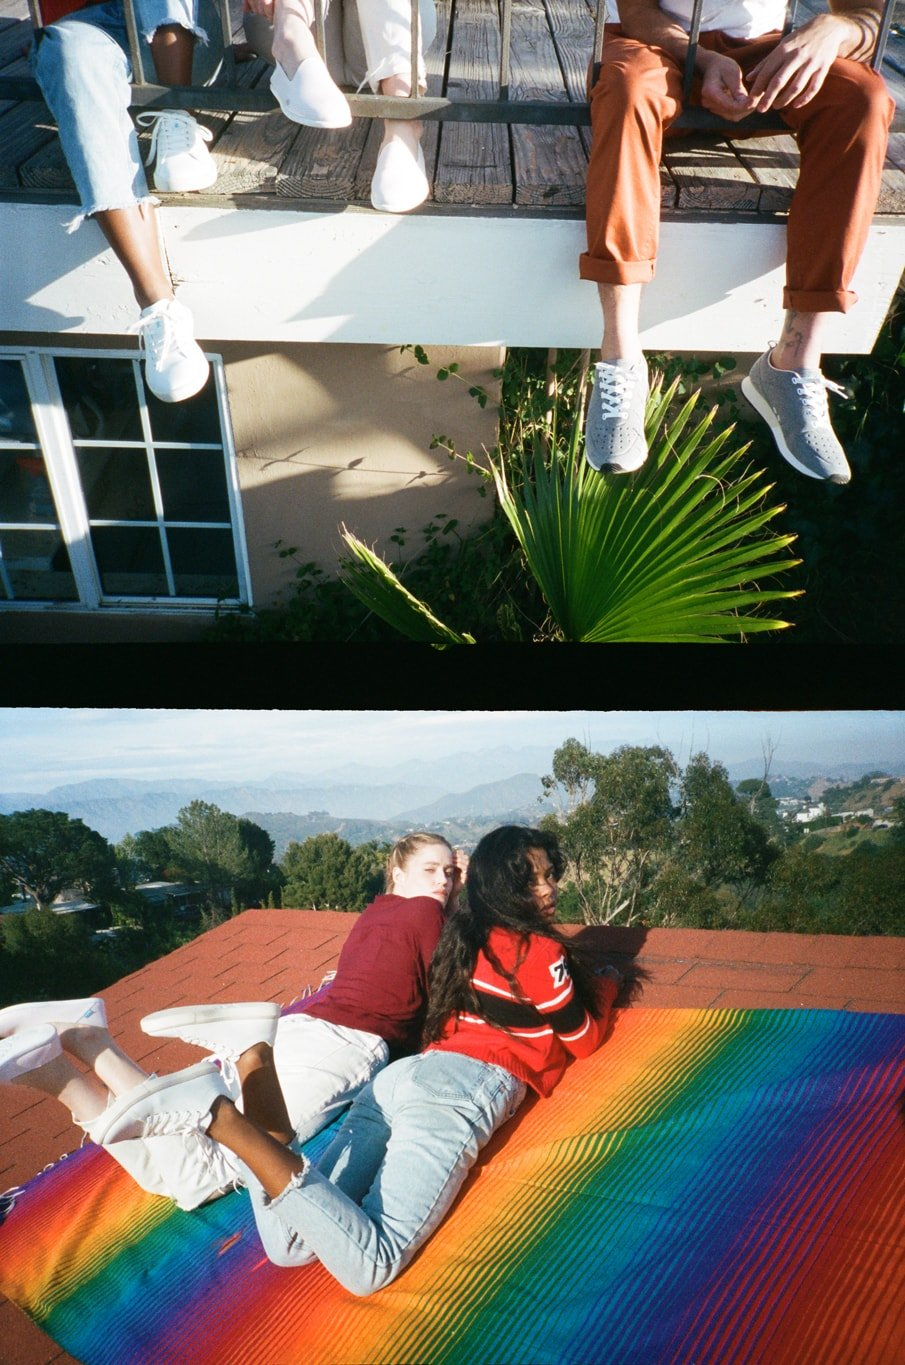 people wearing classic shoes sitting on a balcony in the sun. two girls lying in the sun on a roof in California wearing classic white sneakers